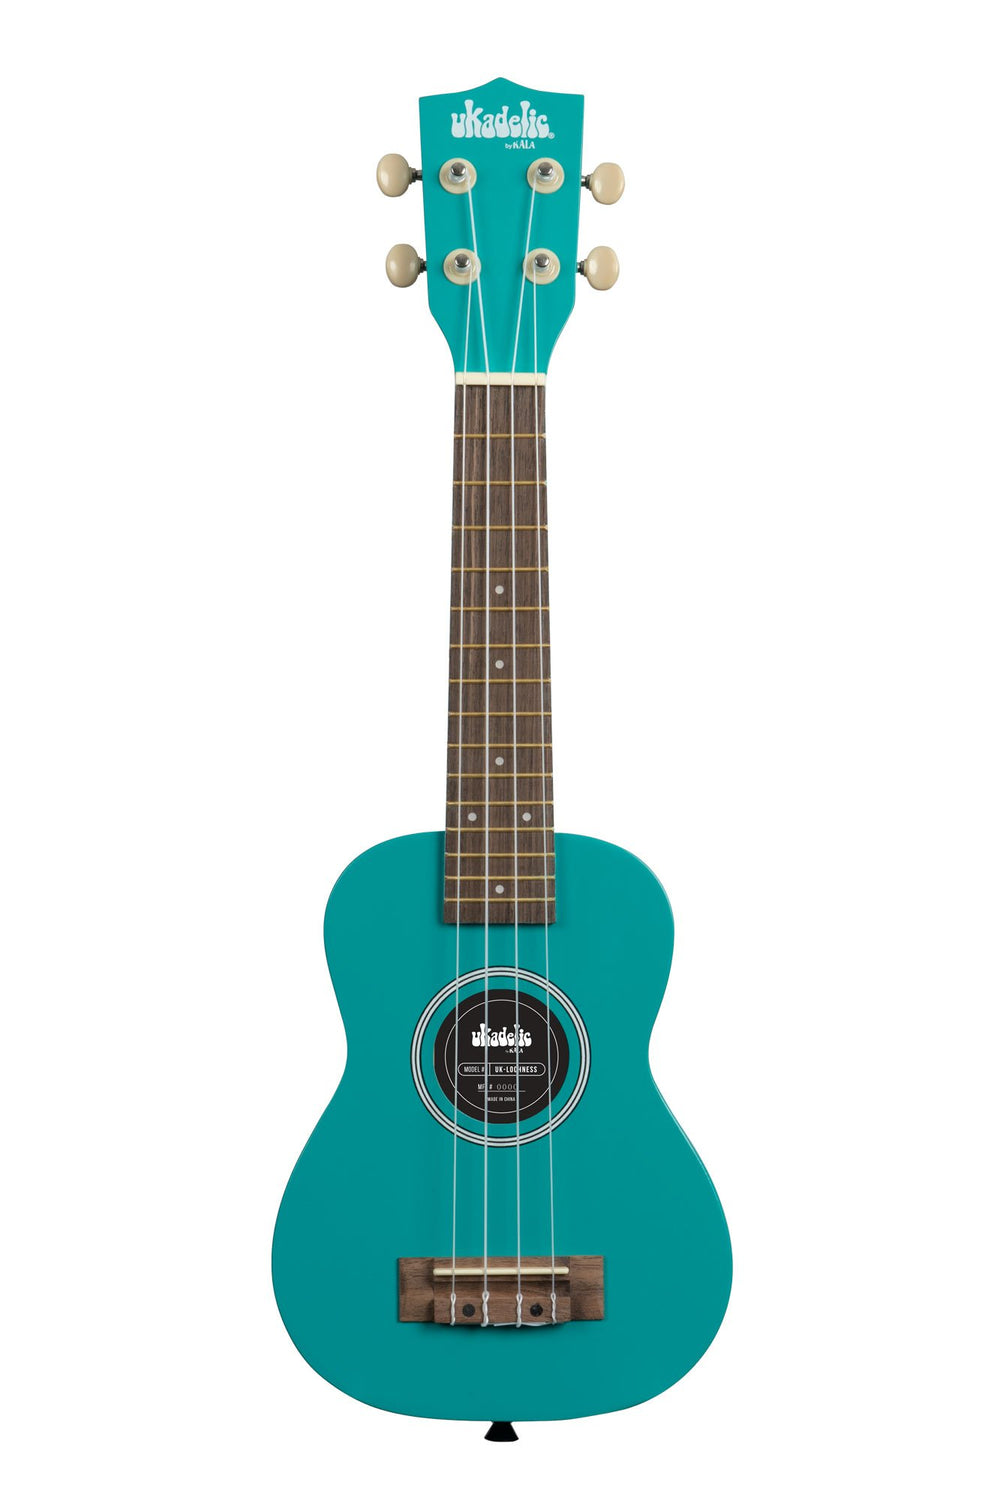 KALA Ukadelic Lockness Aqua Soprano Ukulele Pack with Tote Bag UK-LOCHNESS